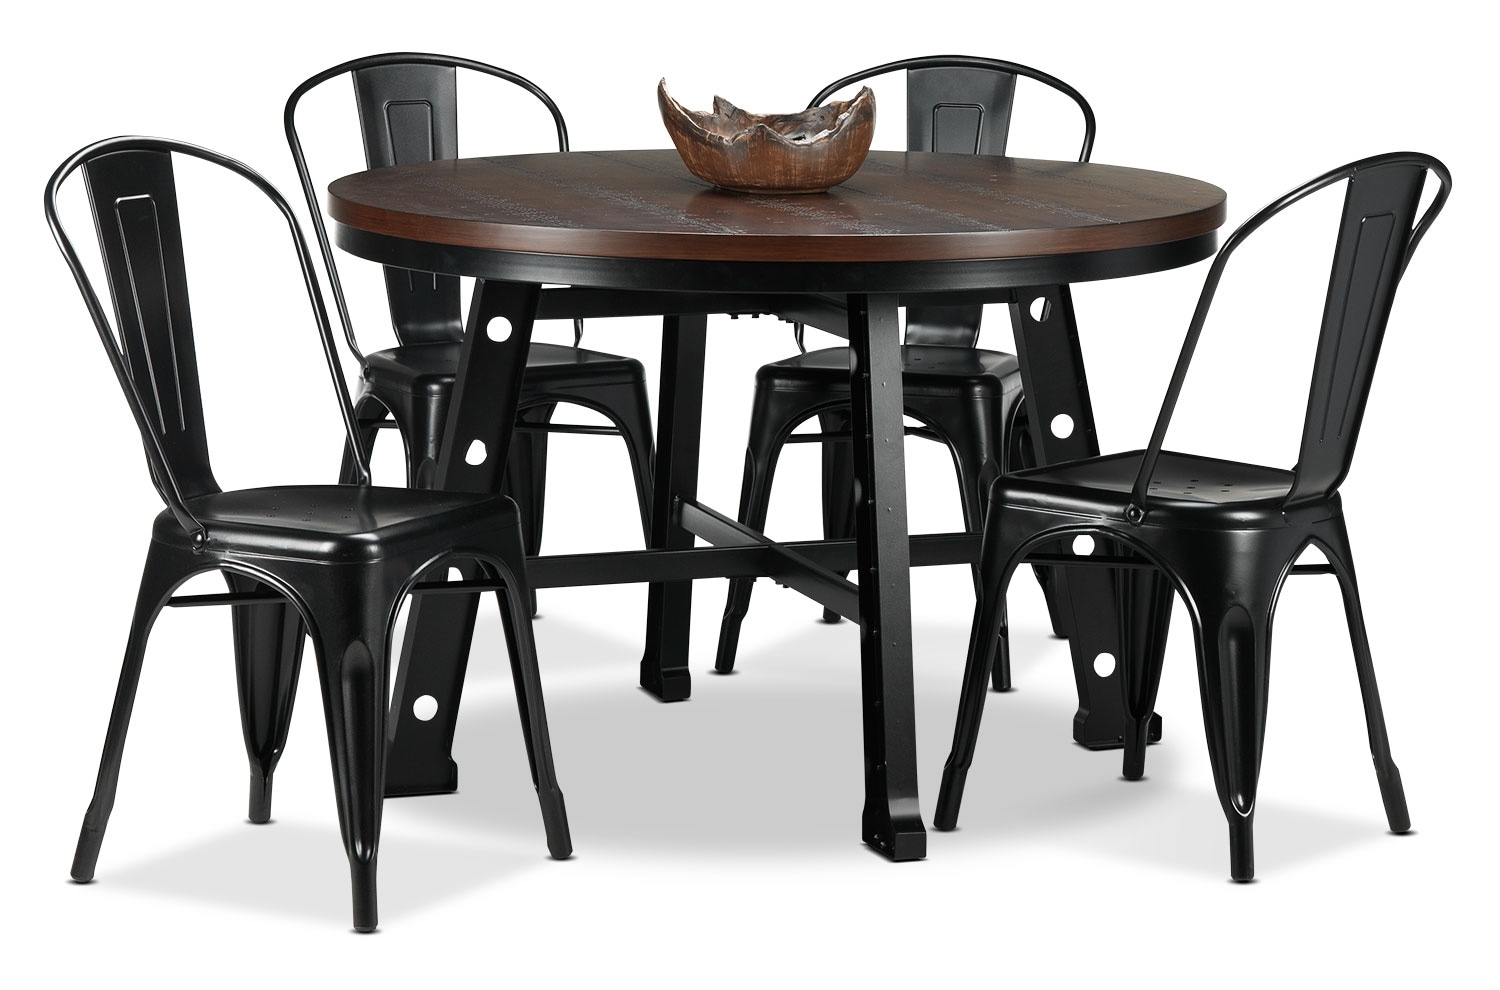 Stockton 5-Piece Dinette Set - Black and Walnut